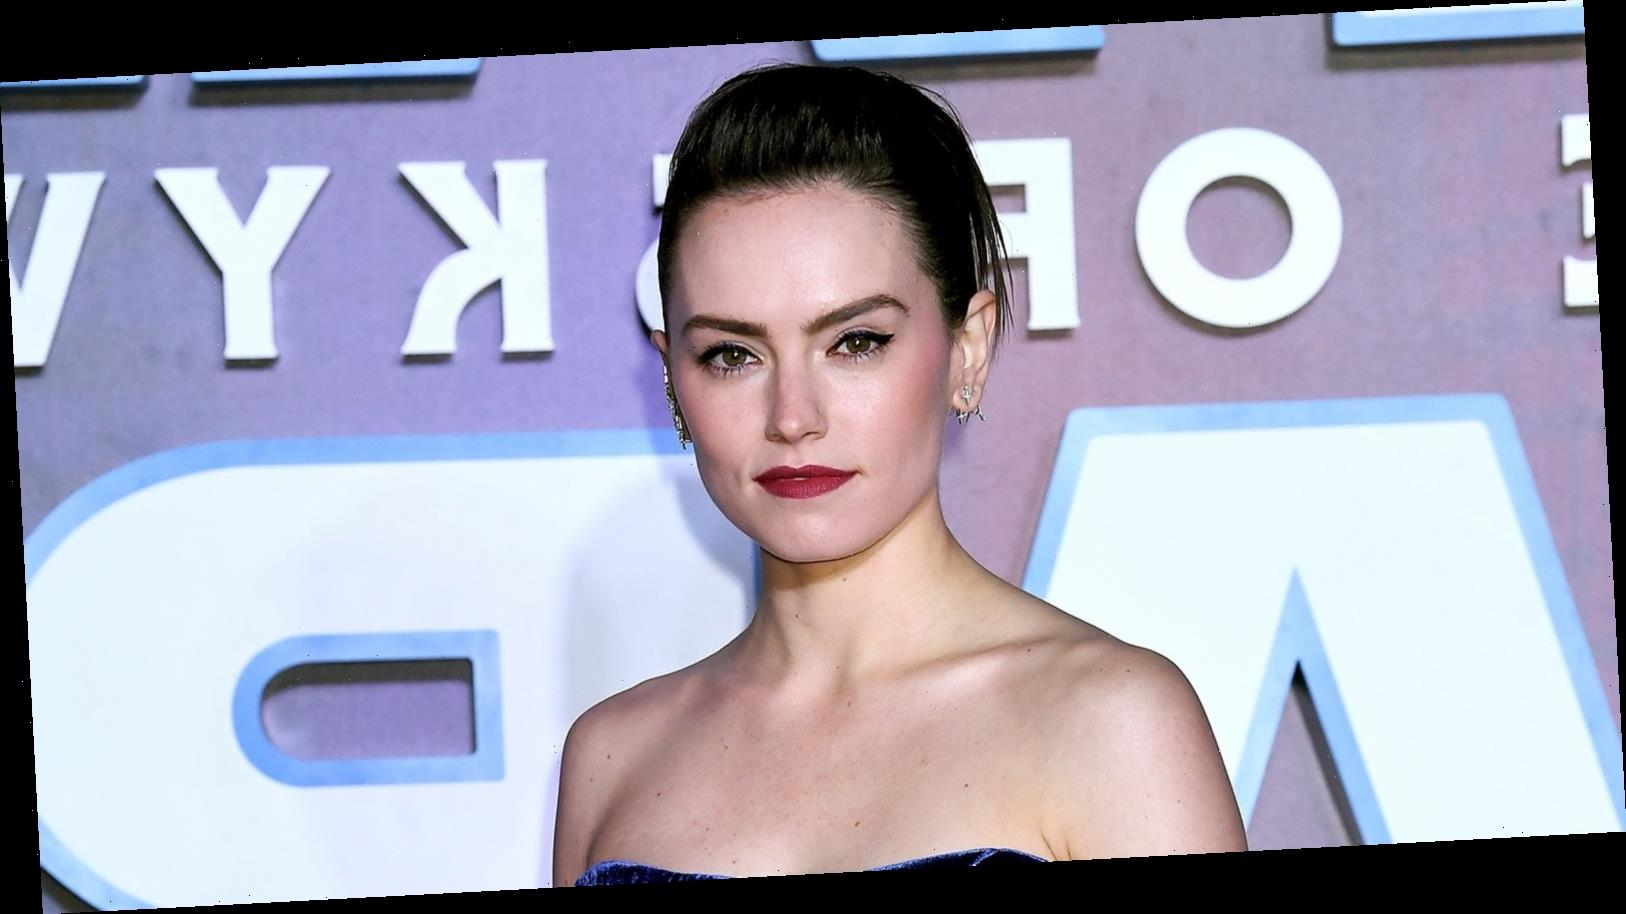 Daisy Ridley: I've Been Called 'Intimidating' and 'Aggressive' at Work